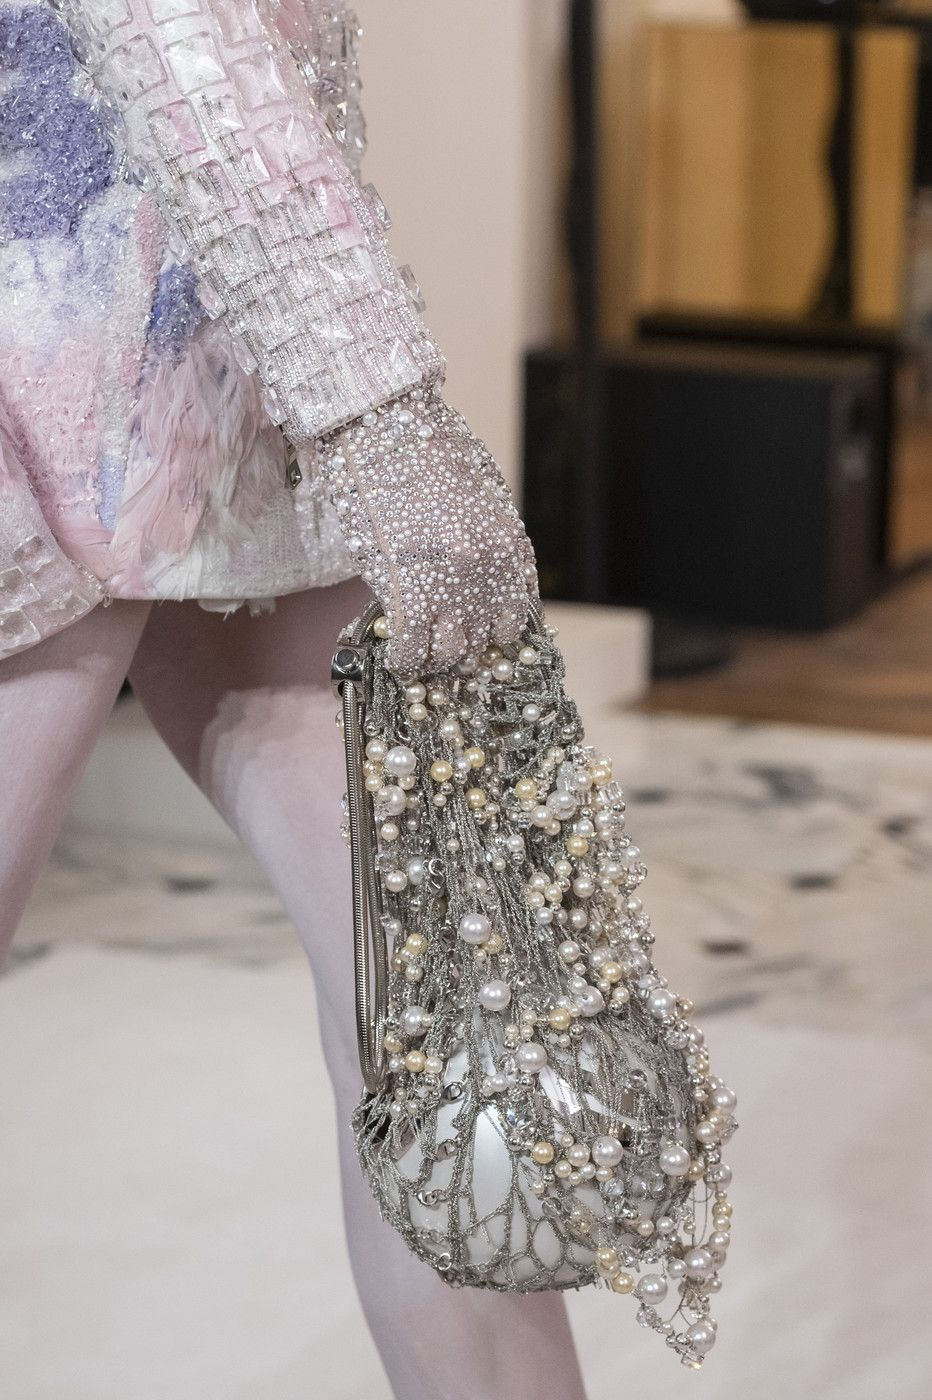 Balmain Paris at Couture Spring 2019 #runwaydetails